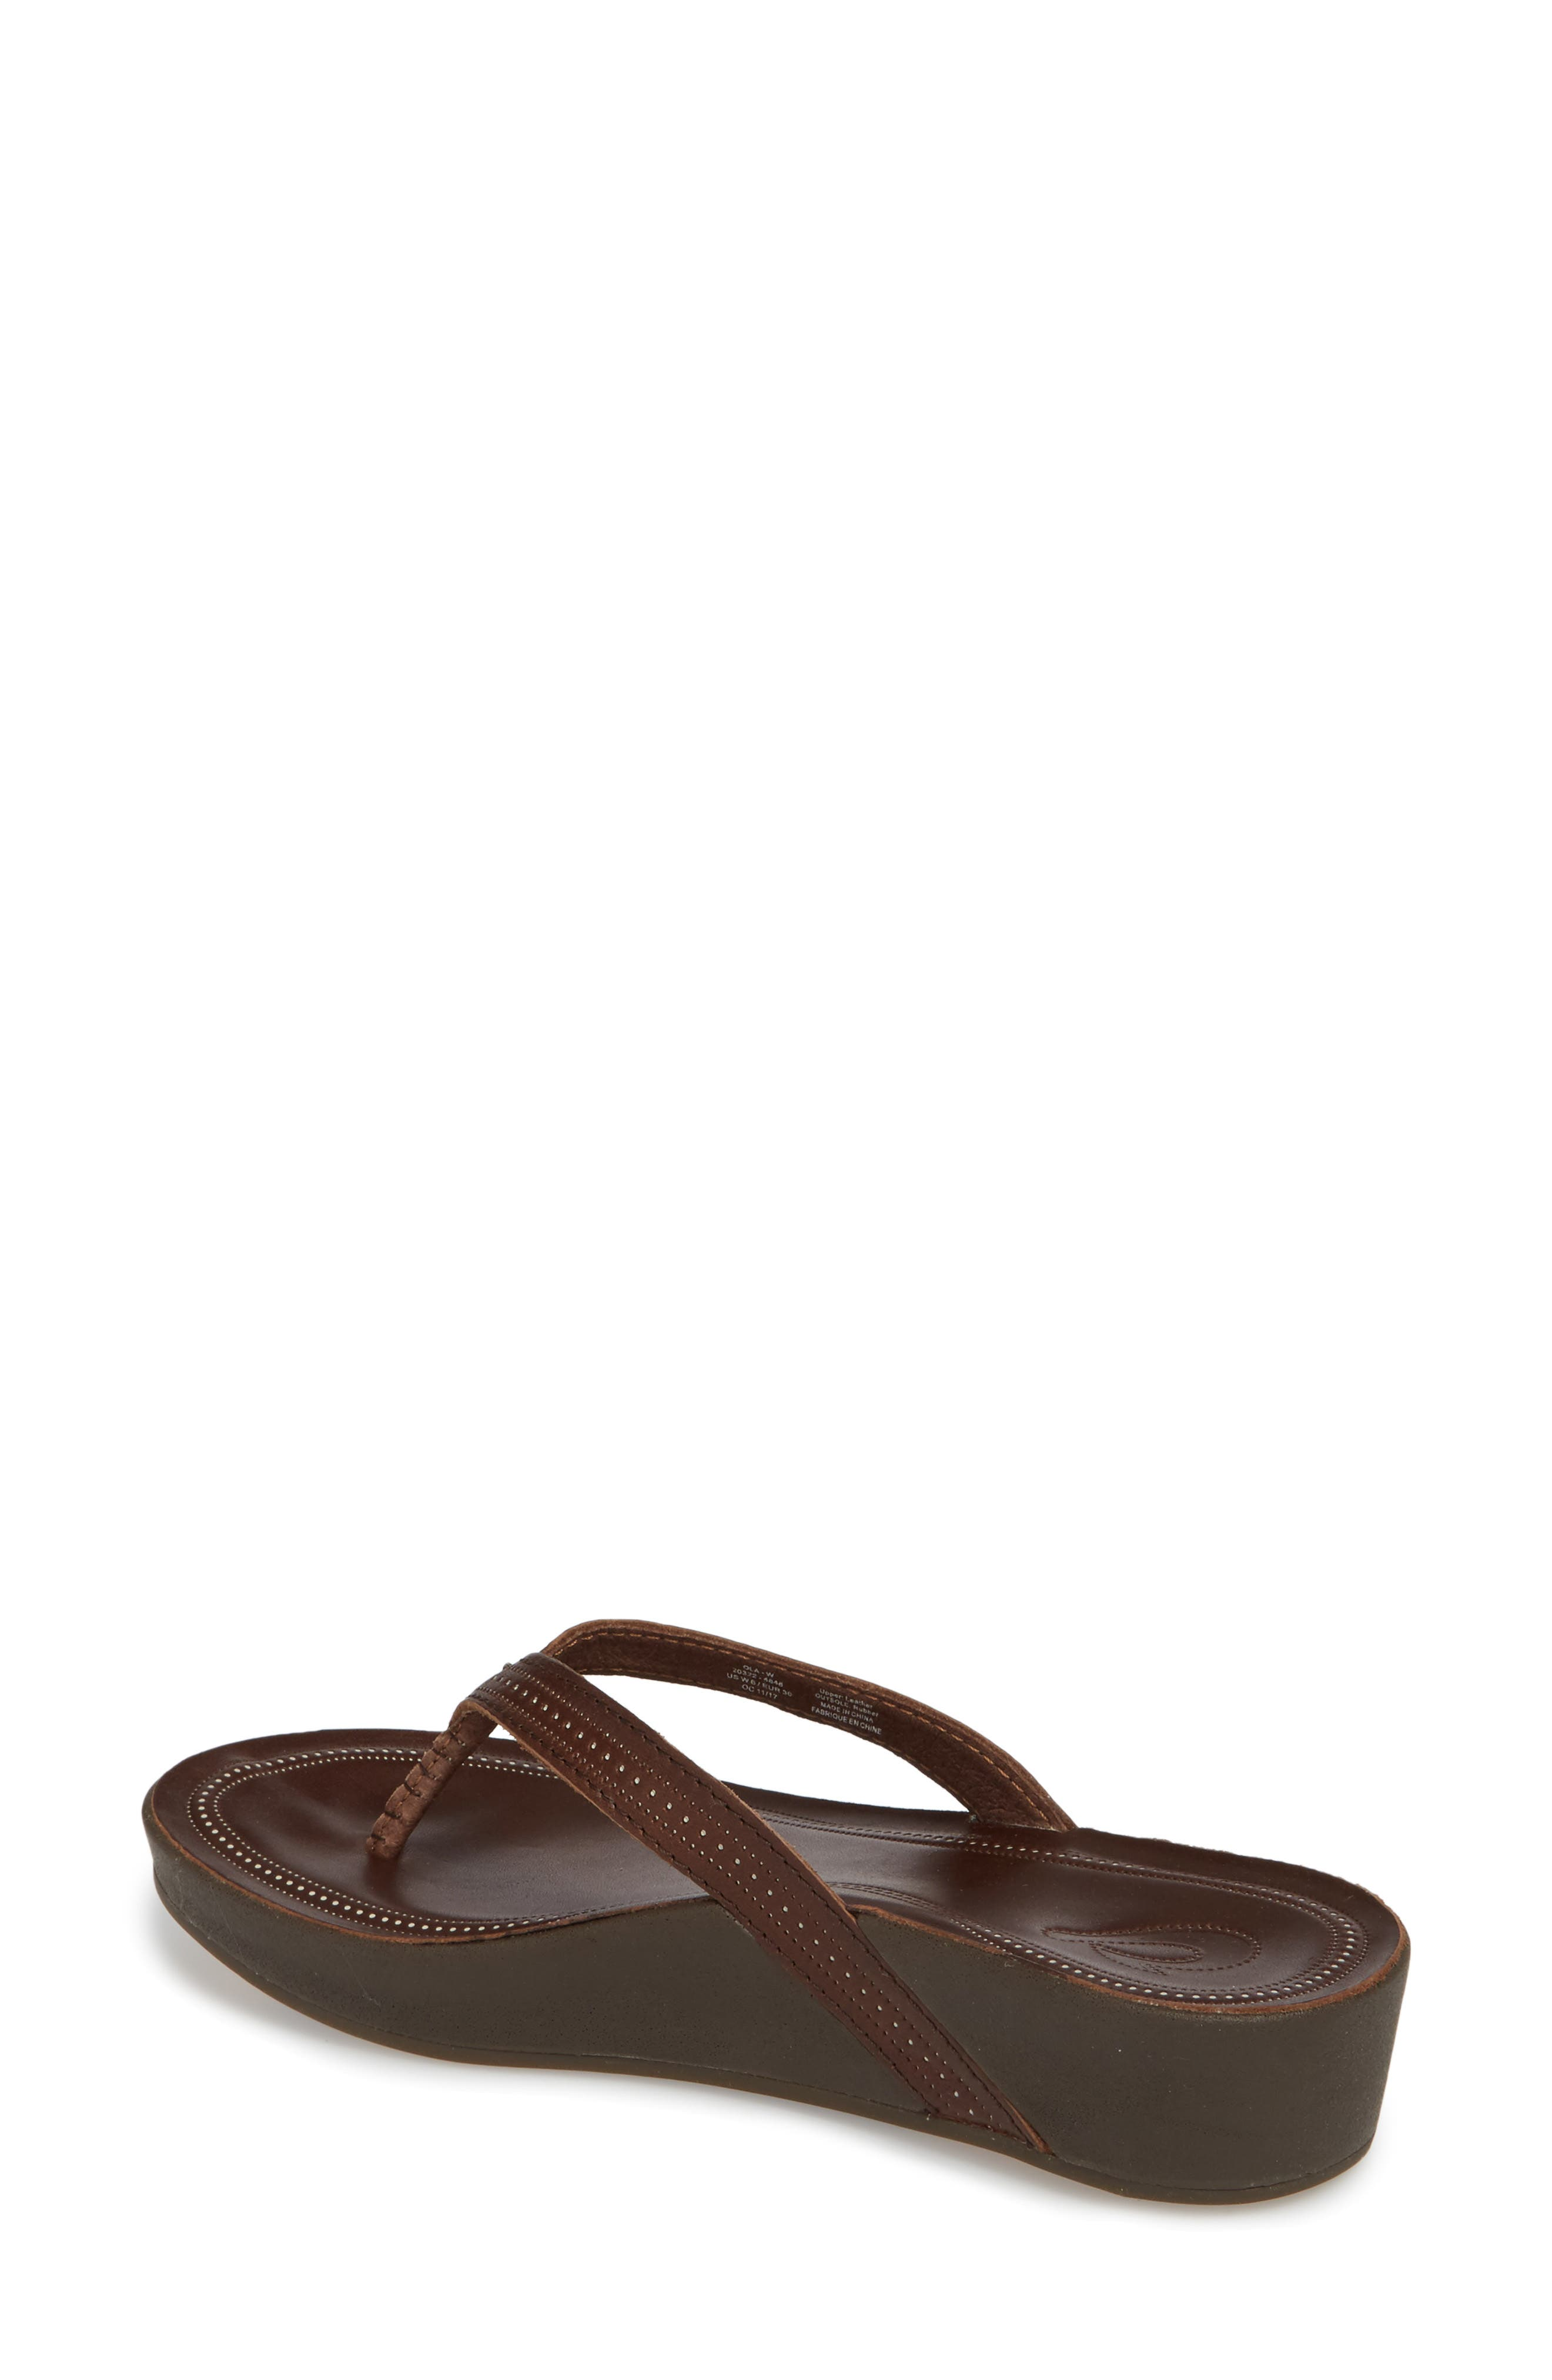 Ola Flip Flop,                             Alternate thumbnail 2, color,                             Dark Java/ Dark Java Leather